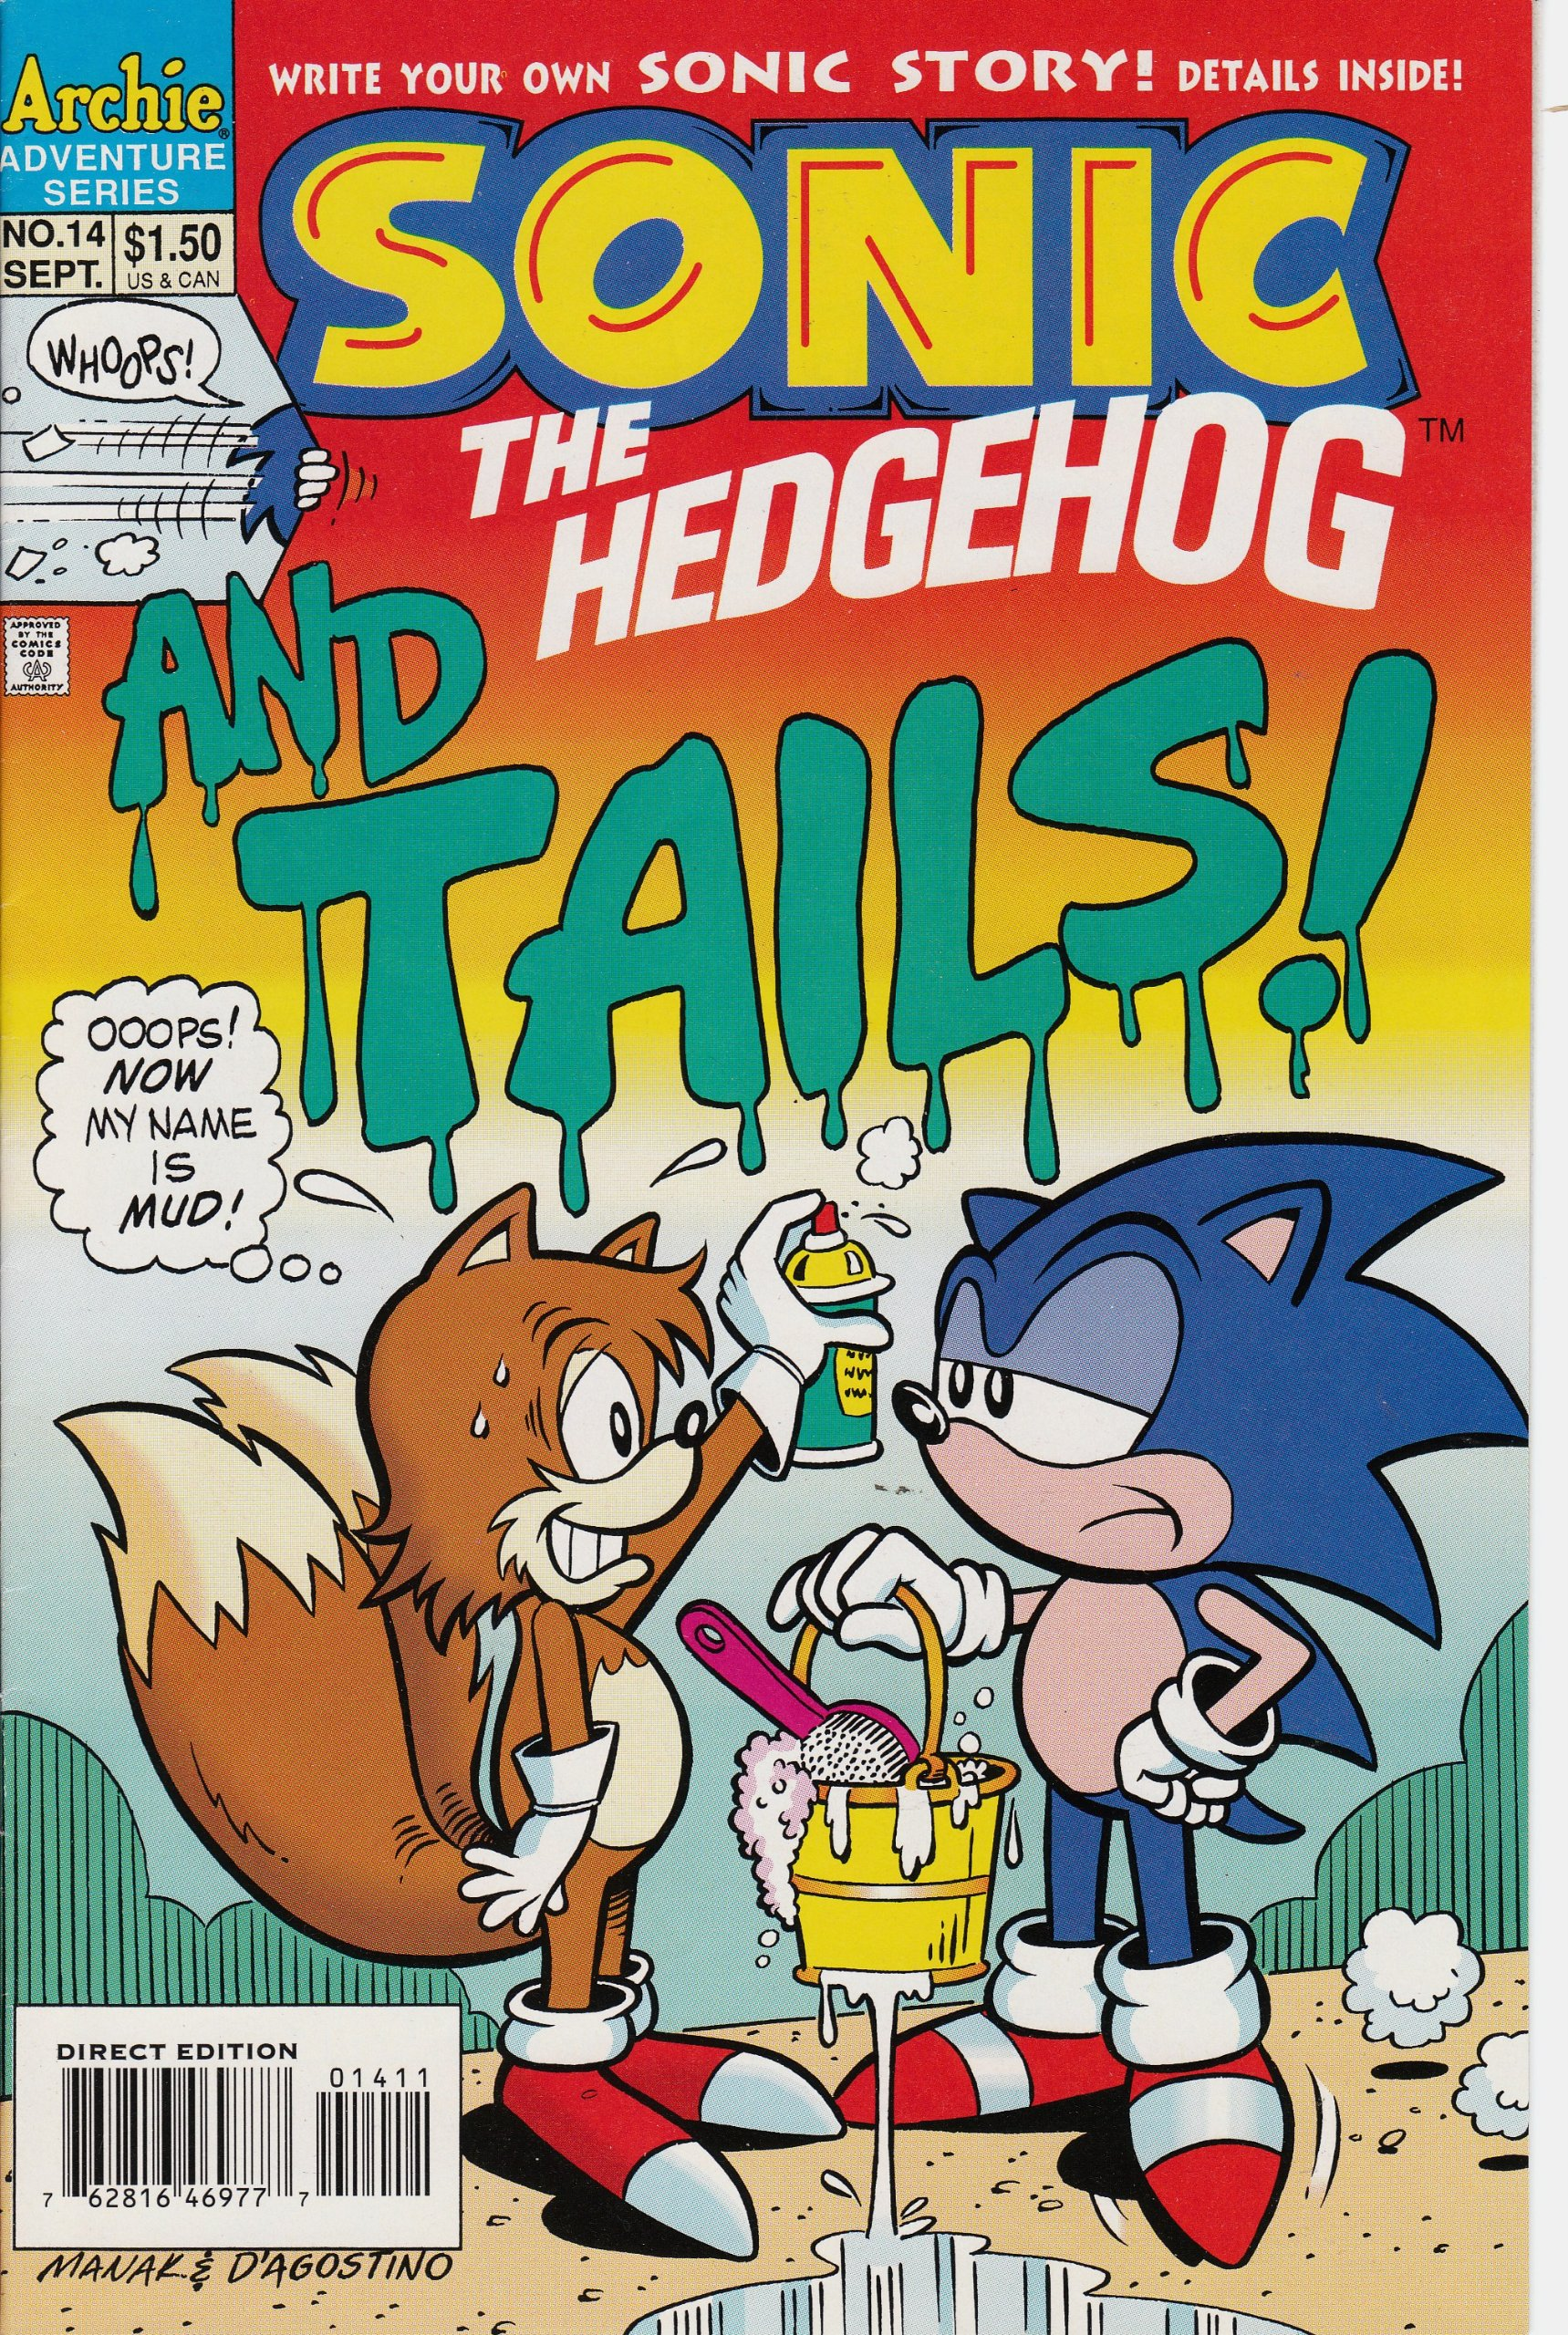 Tails Taste Of Power Sonic The Hedgehog Issue 14 Angelo Decesare Art Mawhinney Amazon Com Books